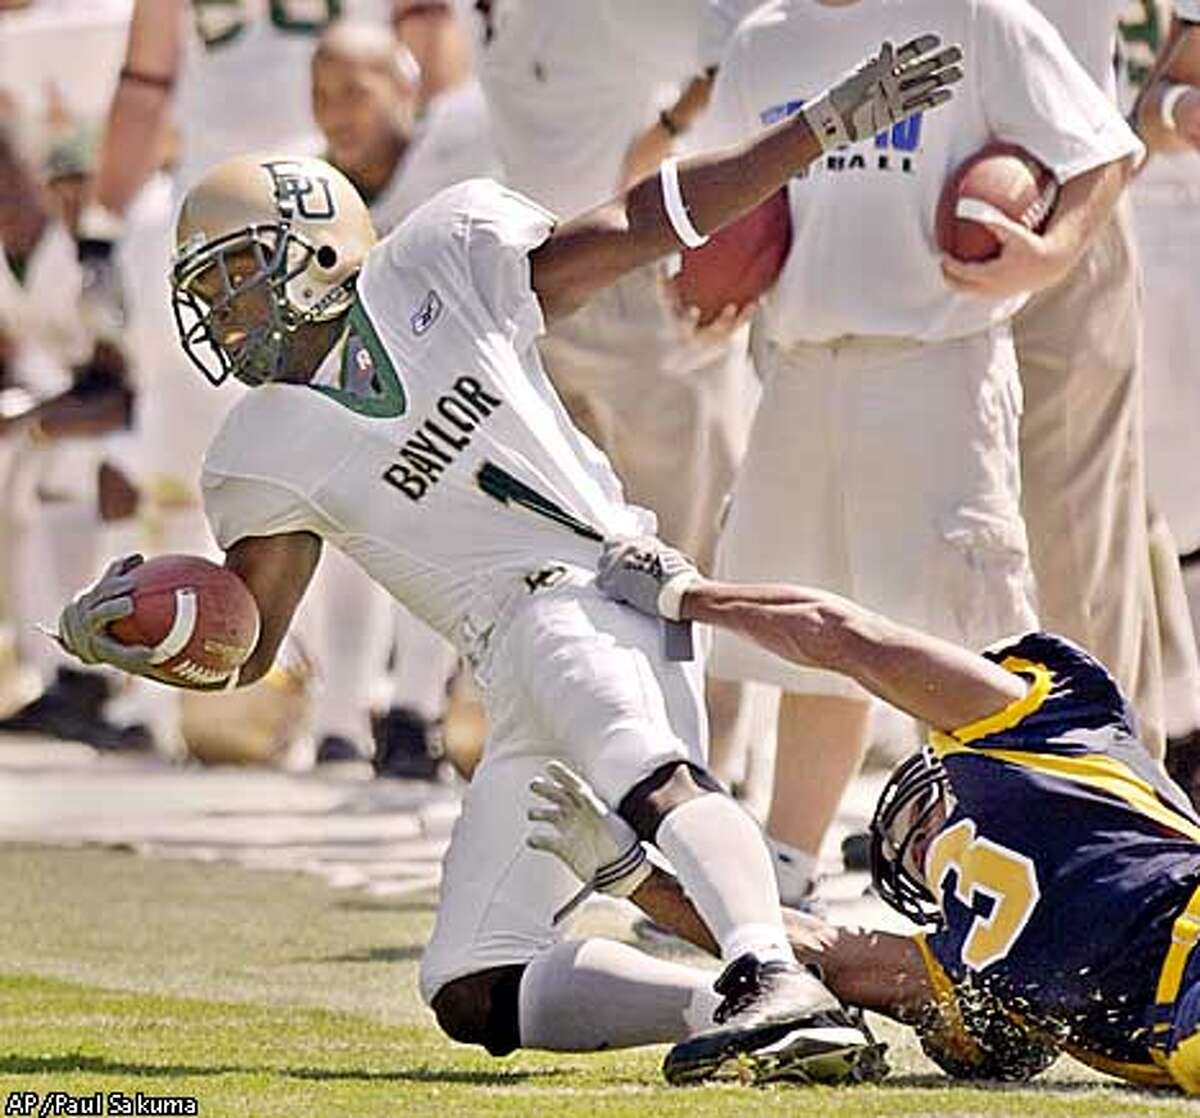 Baylor wide receiver Marques Roberts finds himself in the clutches of Cal's James Bethea. Associated Press photo by Paul Sakuma